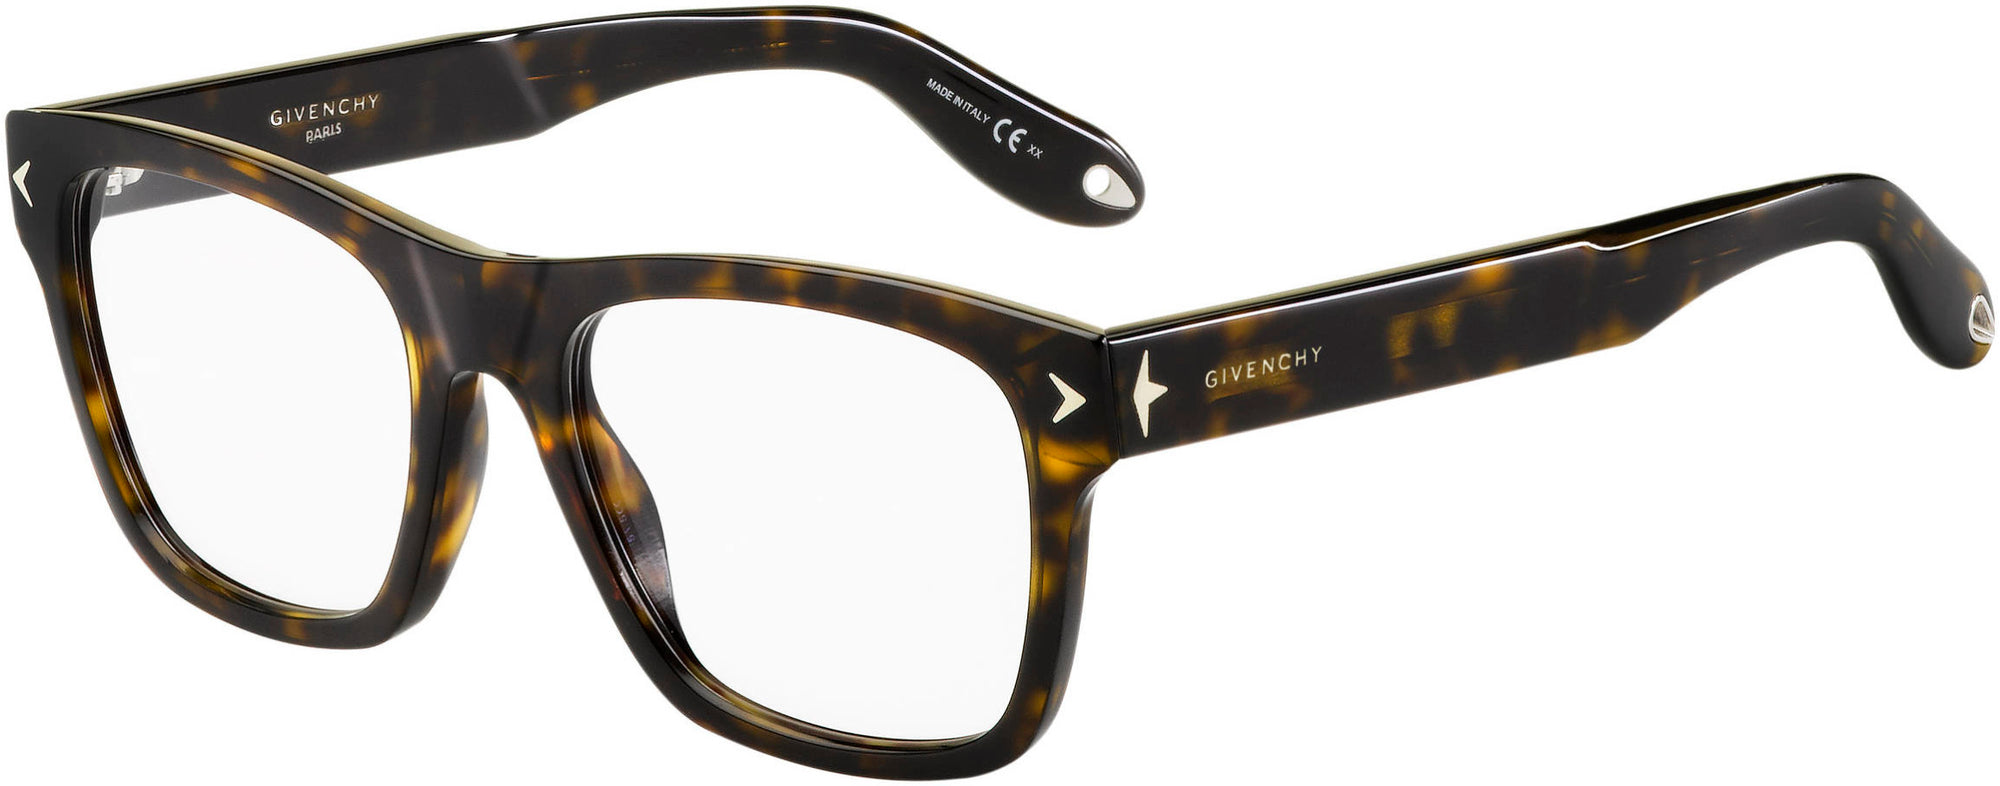 Givenchy GV 0010 Rectangular Eyeglasses 0086-0086  Dark Havana (00 Demo Lens)